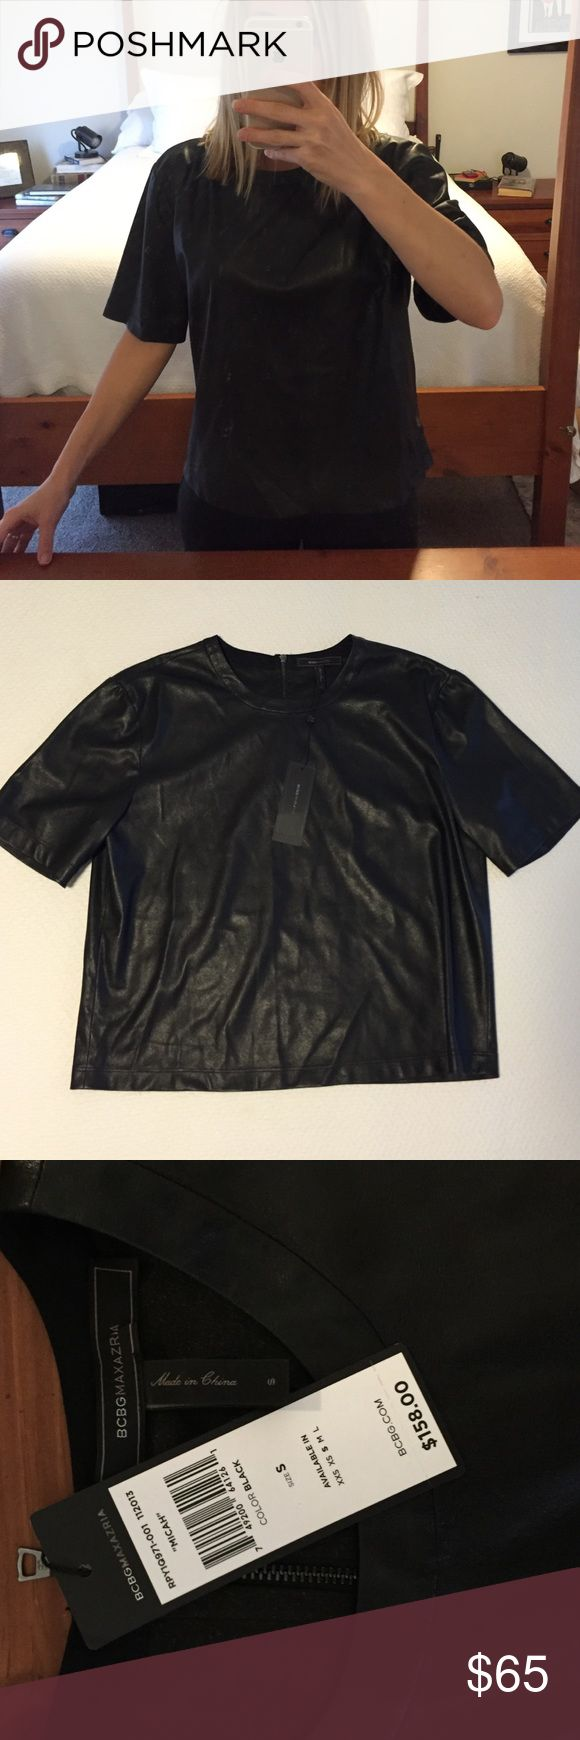 BCBGMAXAZRIA NWT faux leather top Sexy chic at its best! This BCBGMAXAZRIA top has never been worn. It's faux leather and a stylish boxy cut. Style is Micah. BCBGMaxAzria Tops